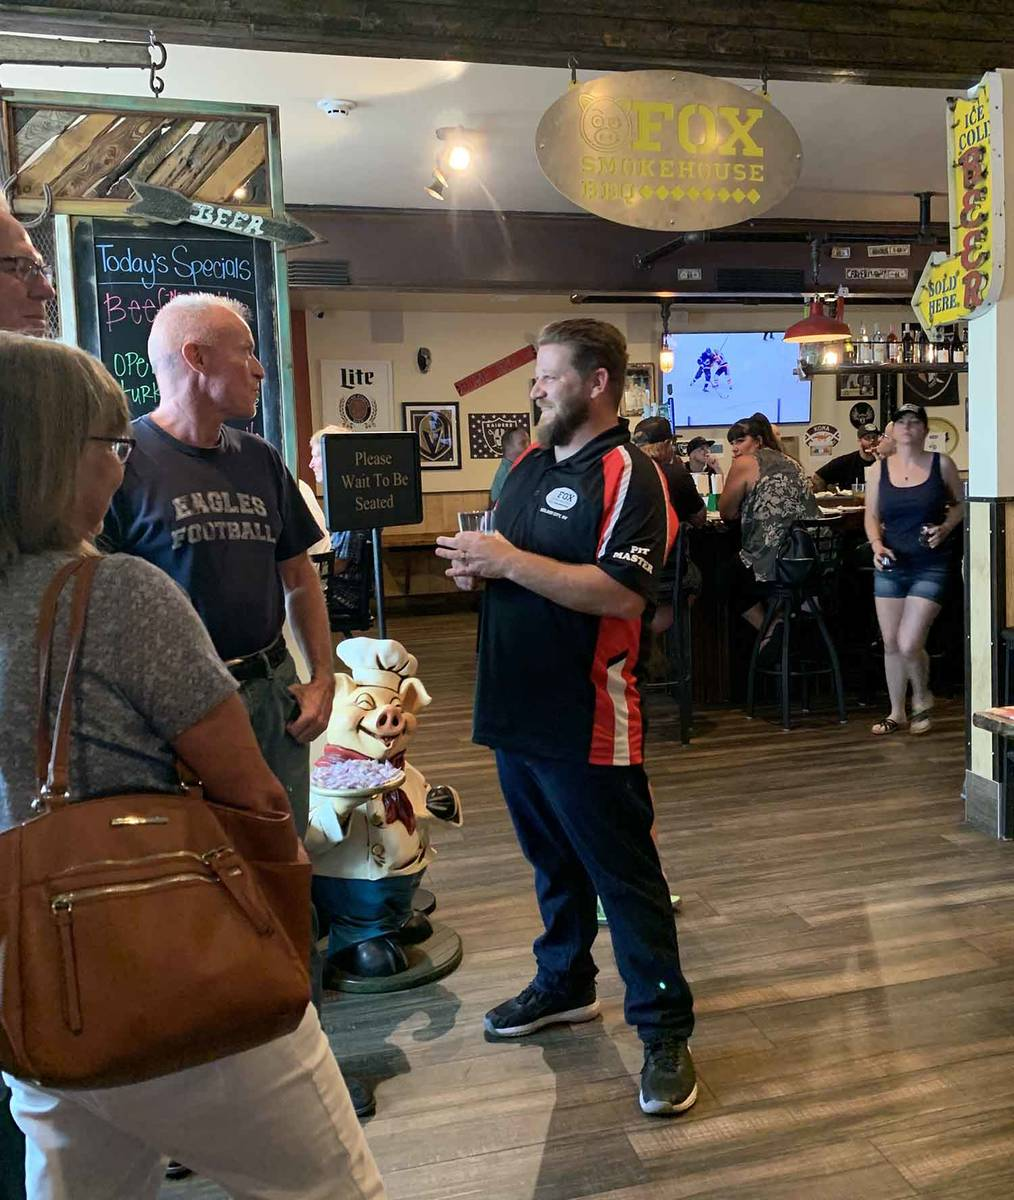 (Hali Bernstein Saylor/Boulder City Review) Mathew Fox, right, meets with supporters during a c ...